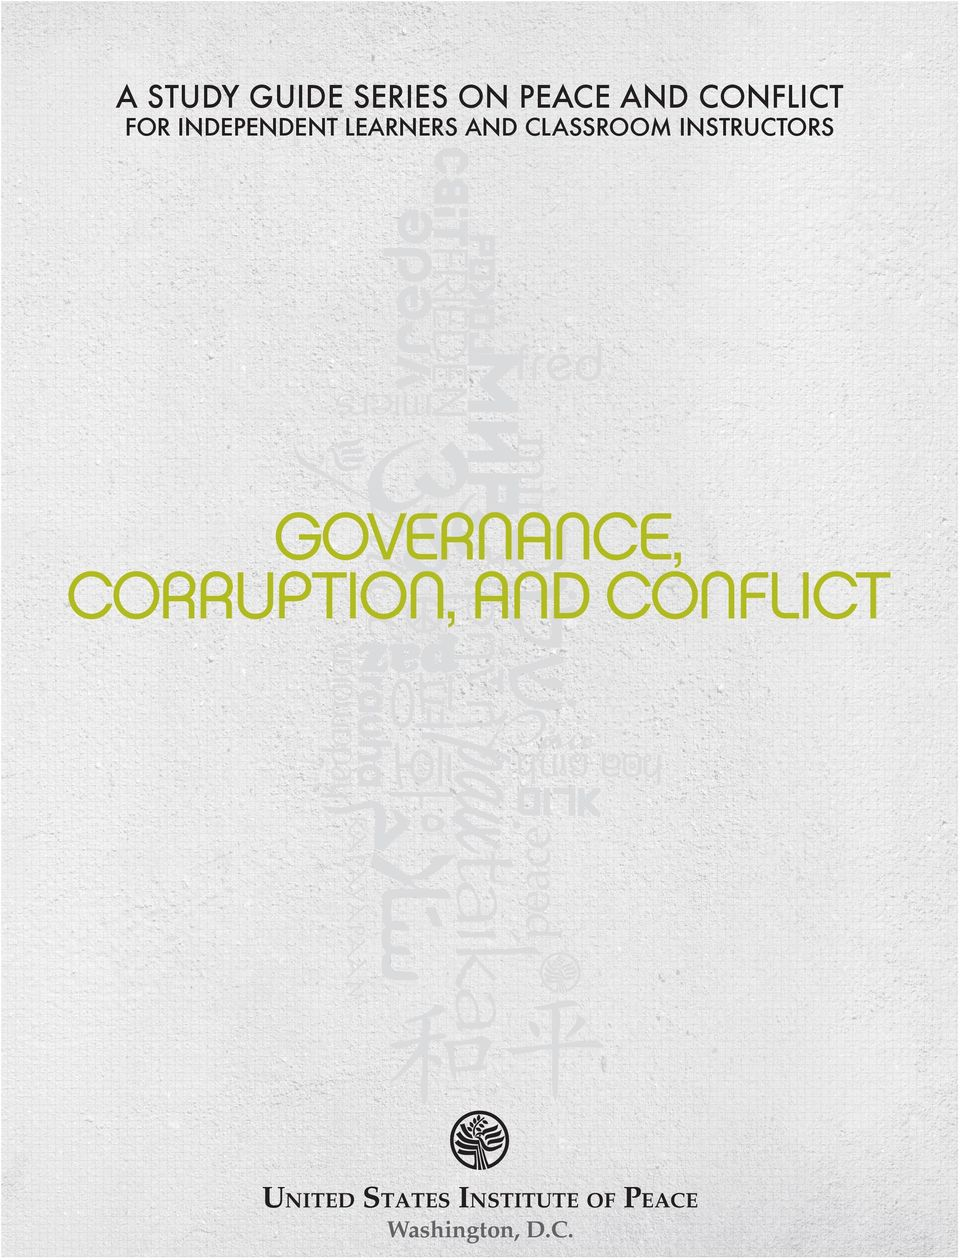 Instructors Governance, corruption, and